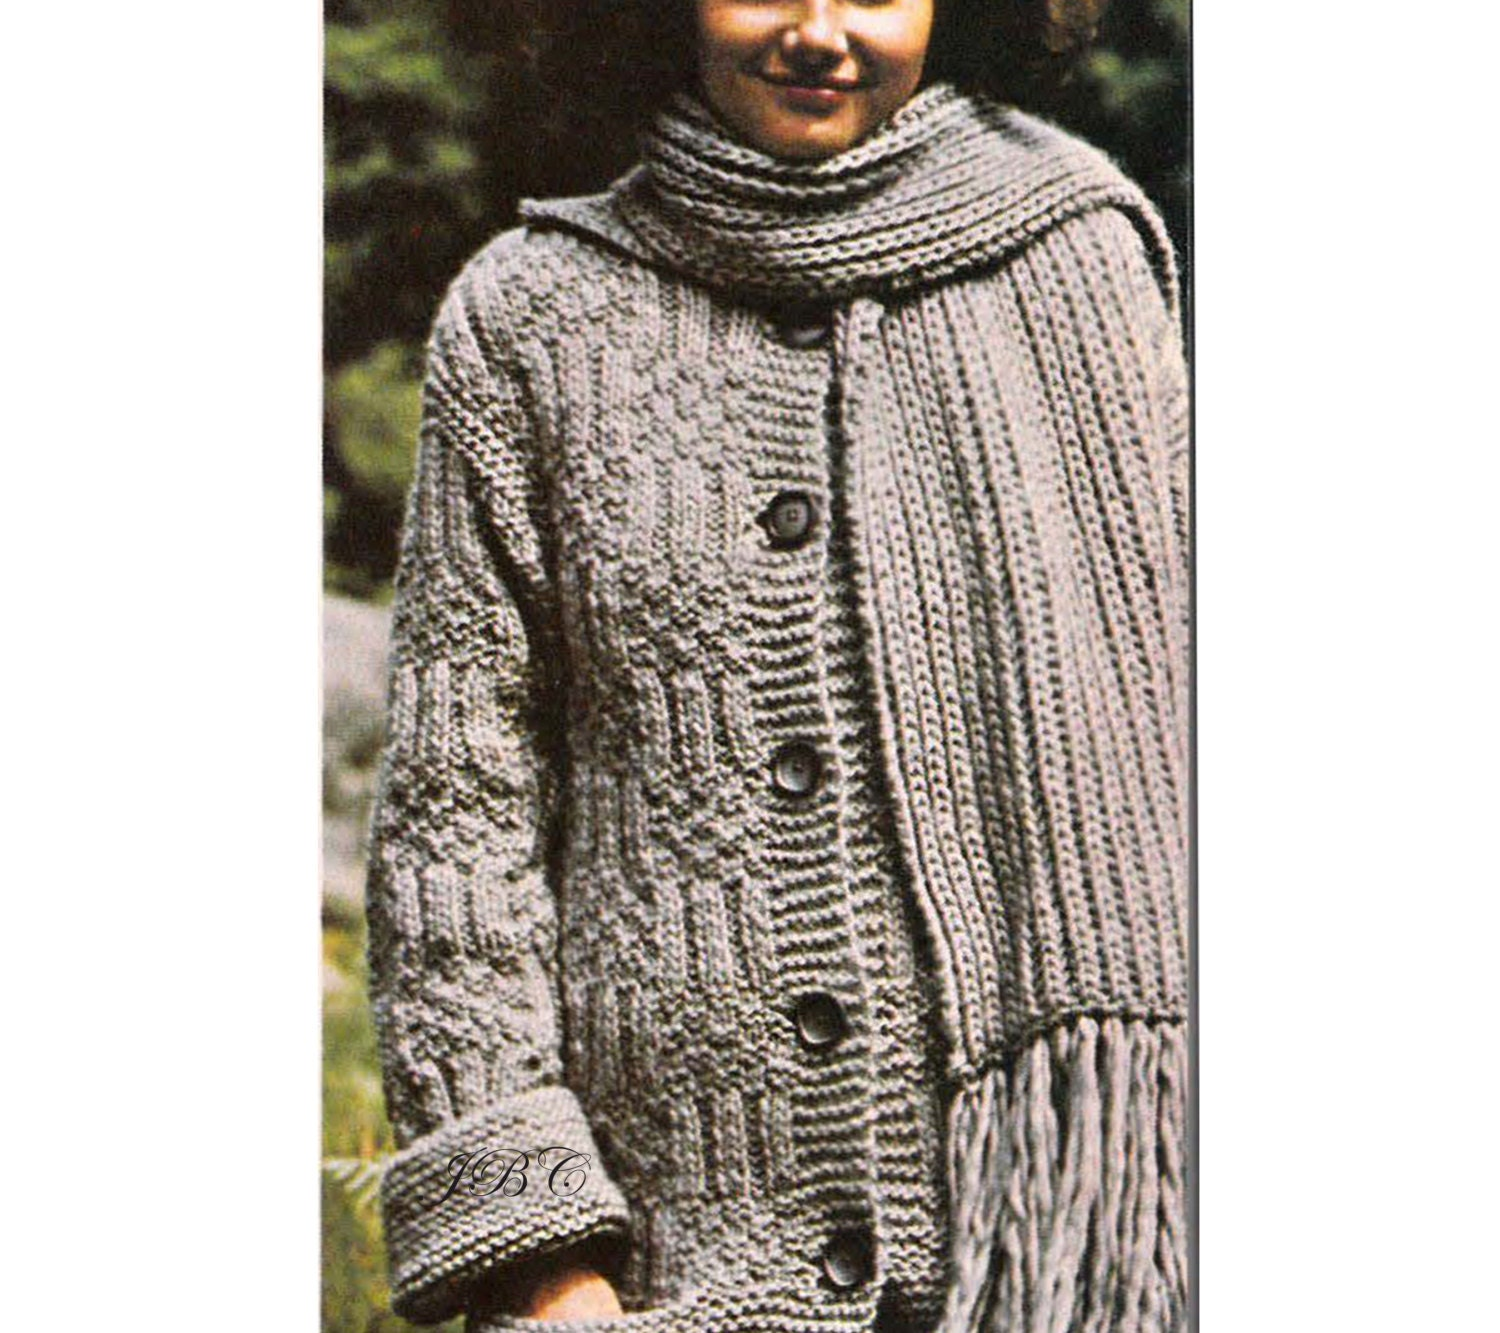 Sweater Coat Knitting Pattern : Sweater coat pattern scarf knitting vintage cable knit